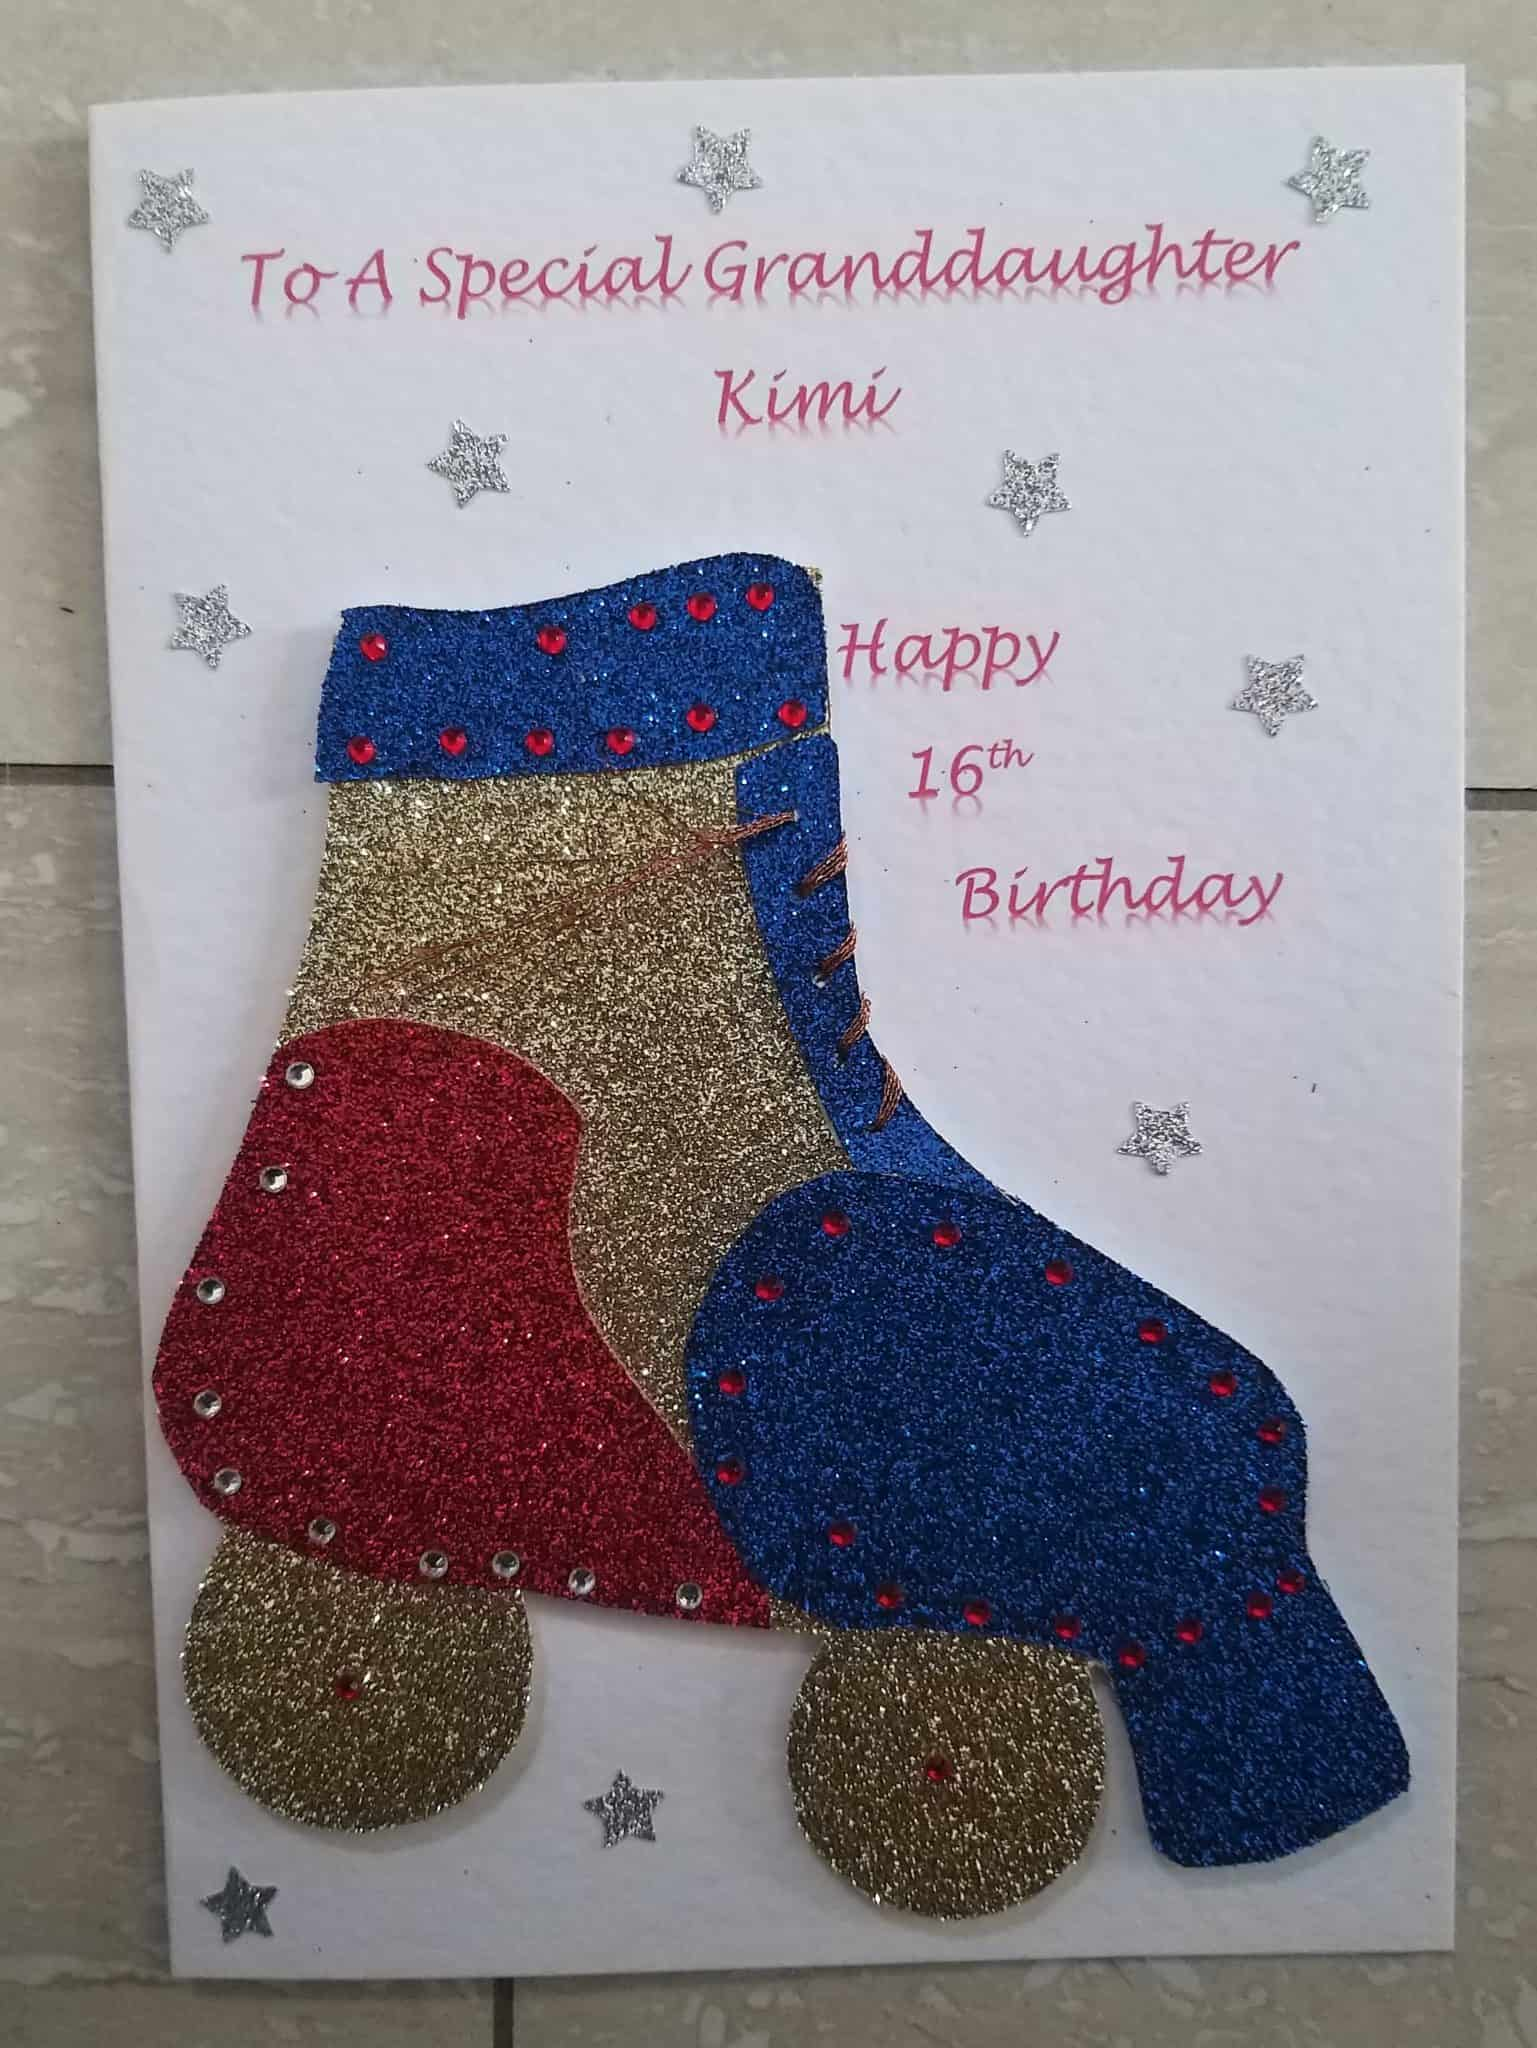 Granddaughter Sister Daughter Birthday Card Handmade And Personalised 20190614 173319